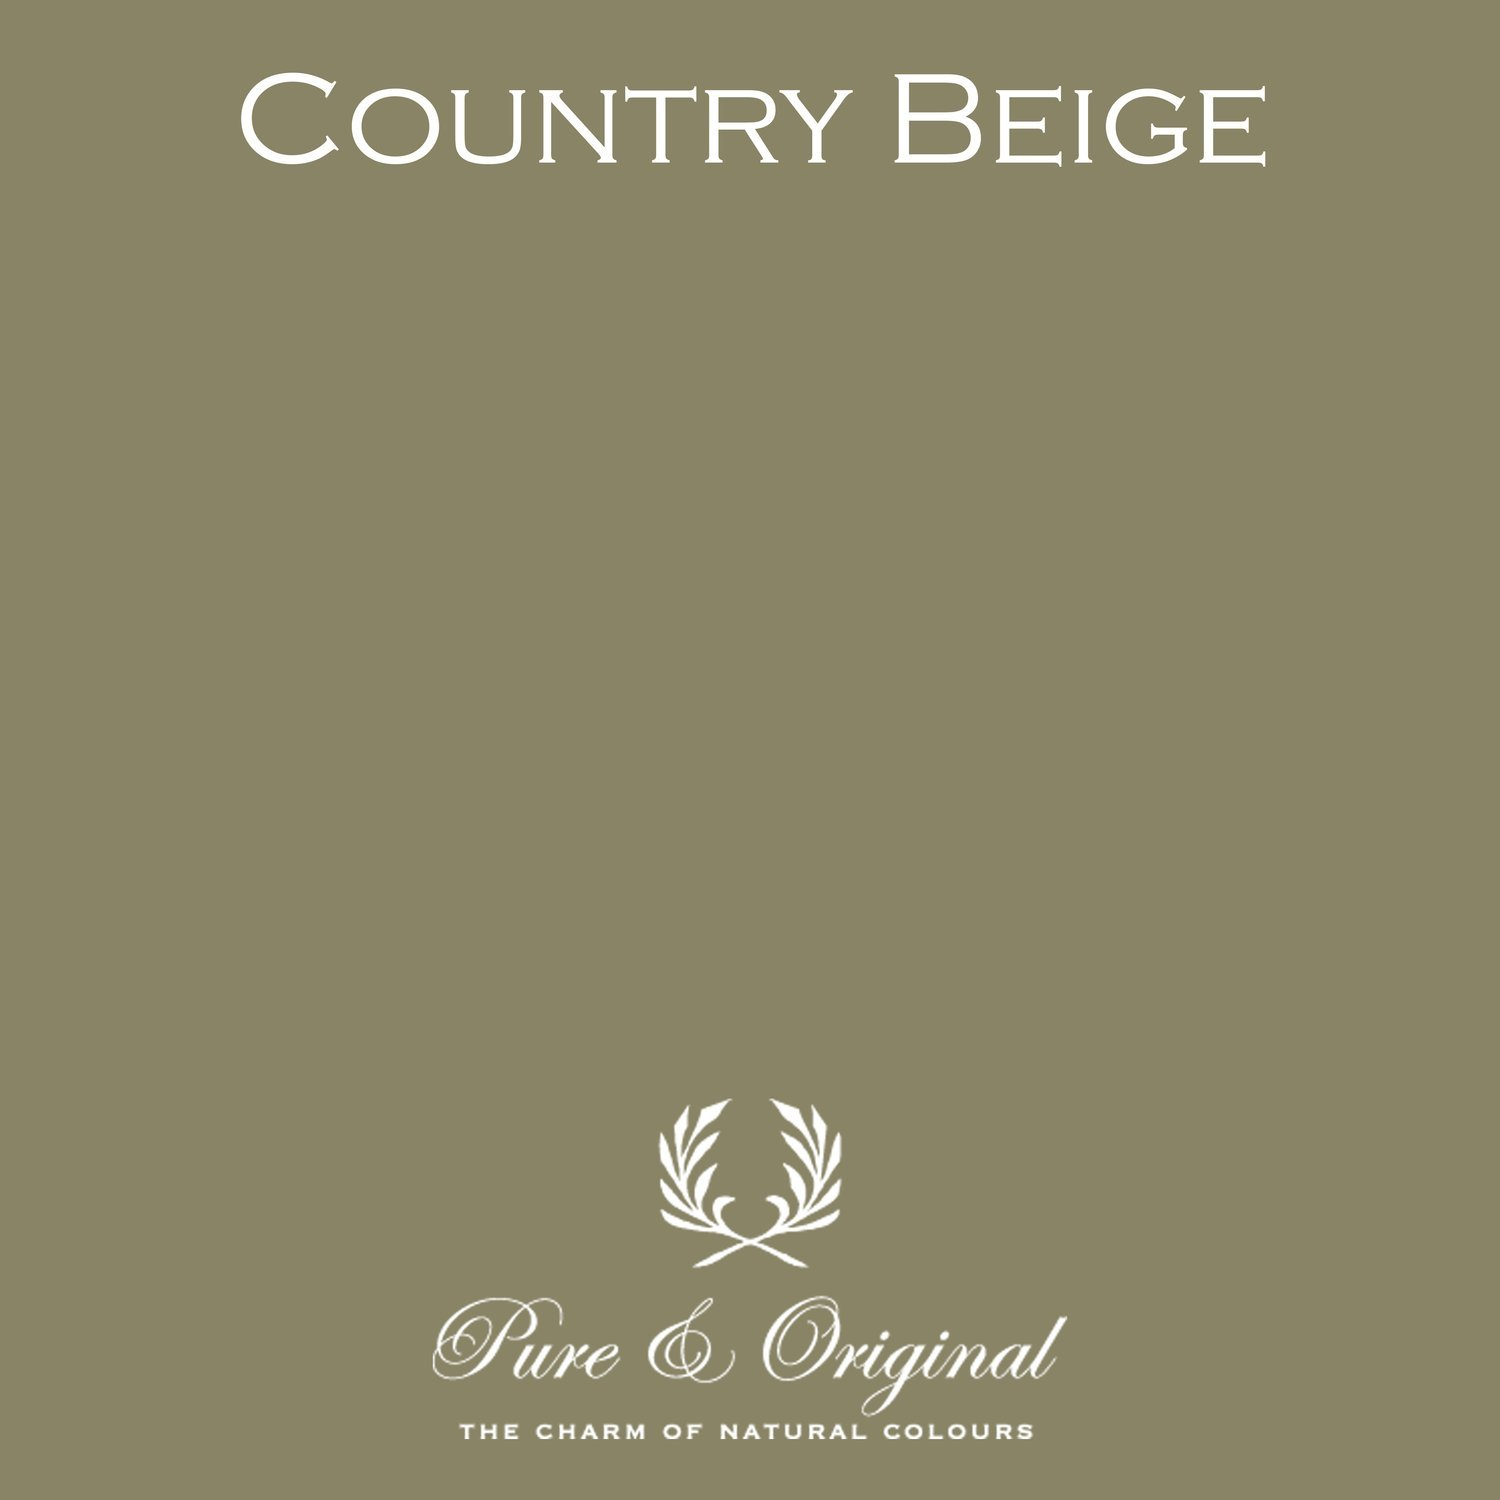 Country Beige Marrakech